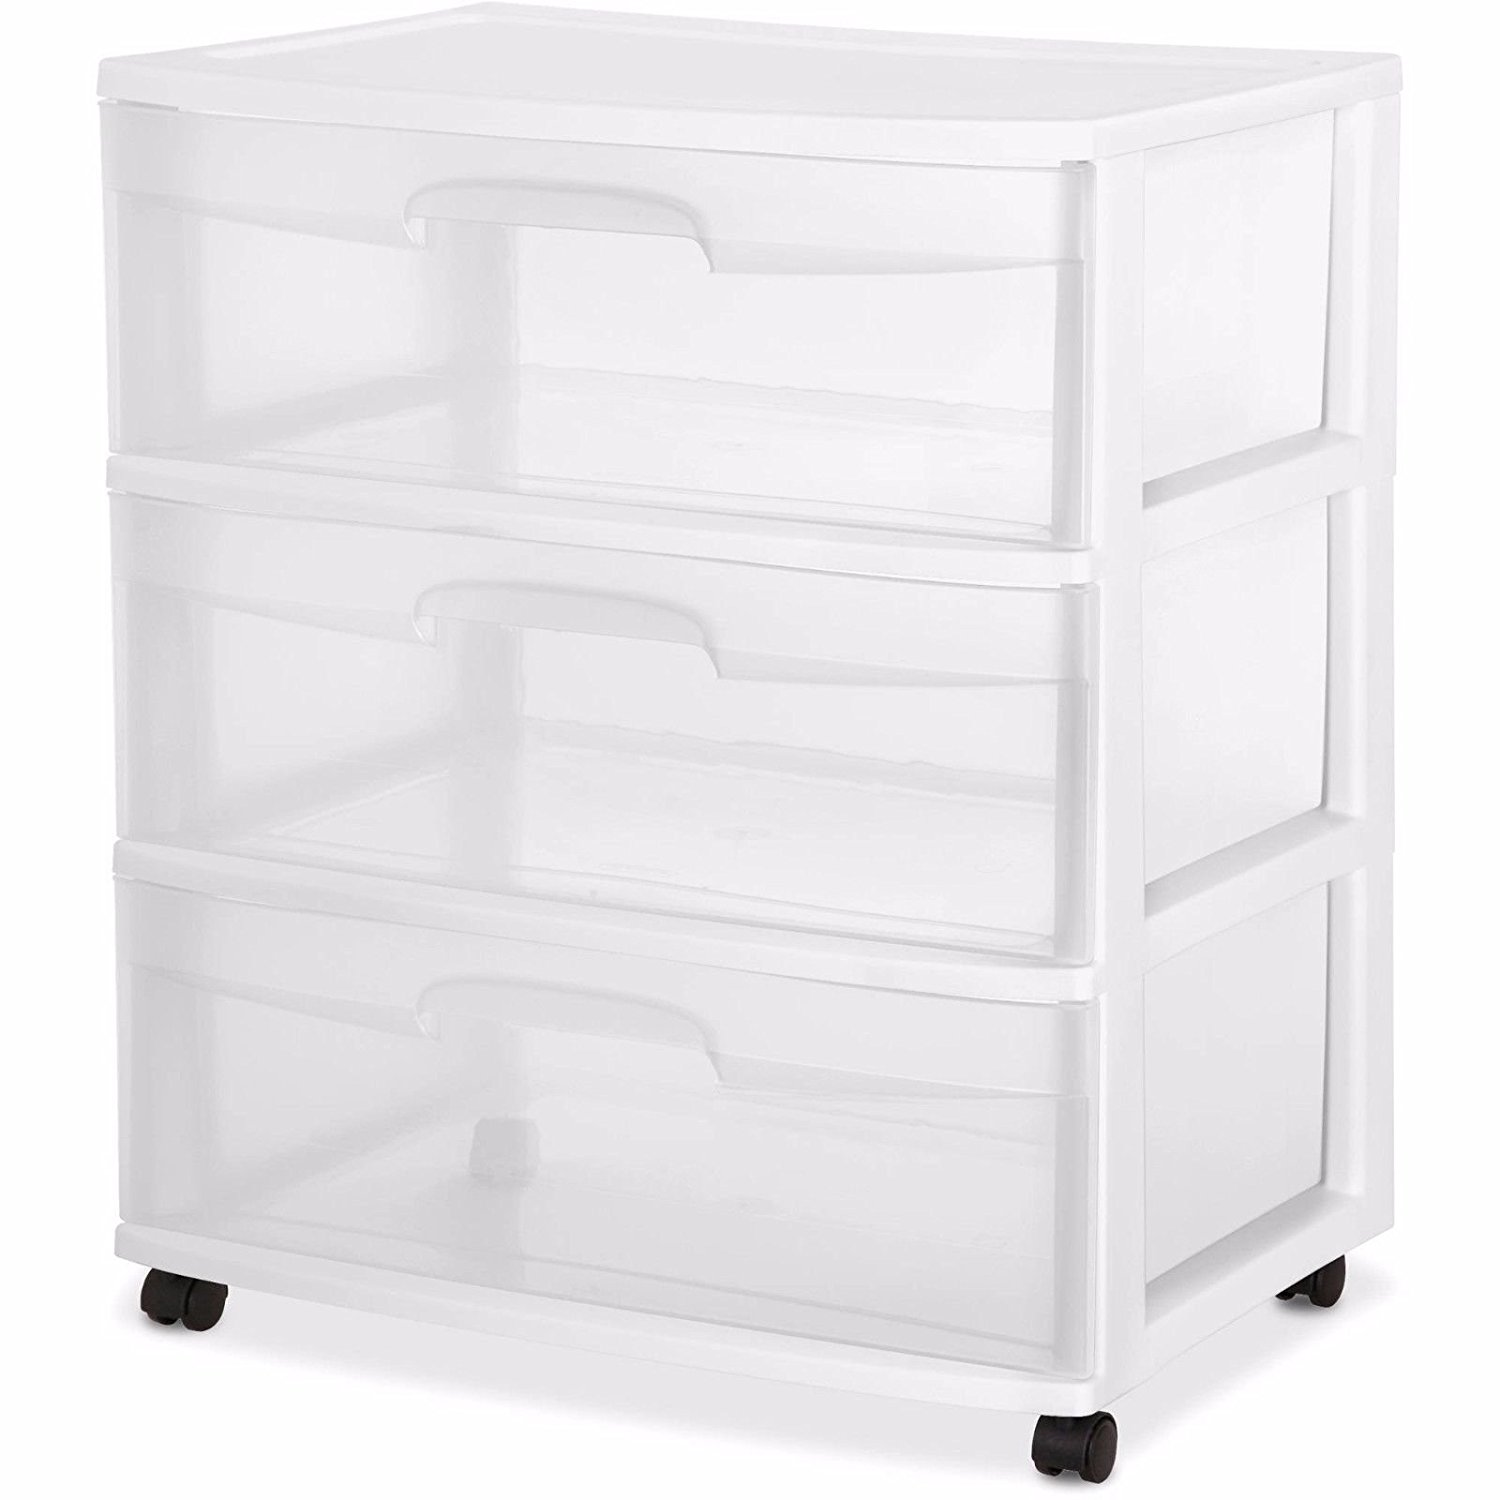 drawer office classics overstock cart today storage supplies organizer aecd free large drawers bin seville shipping product